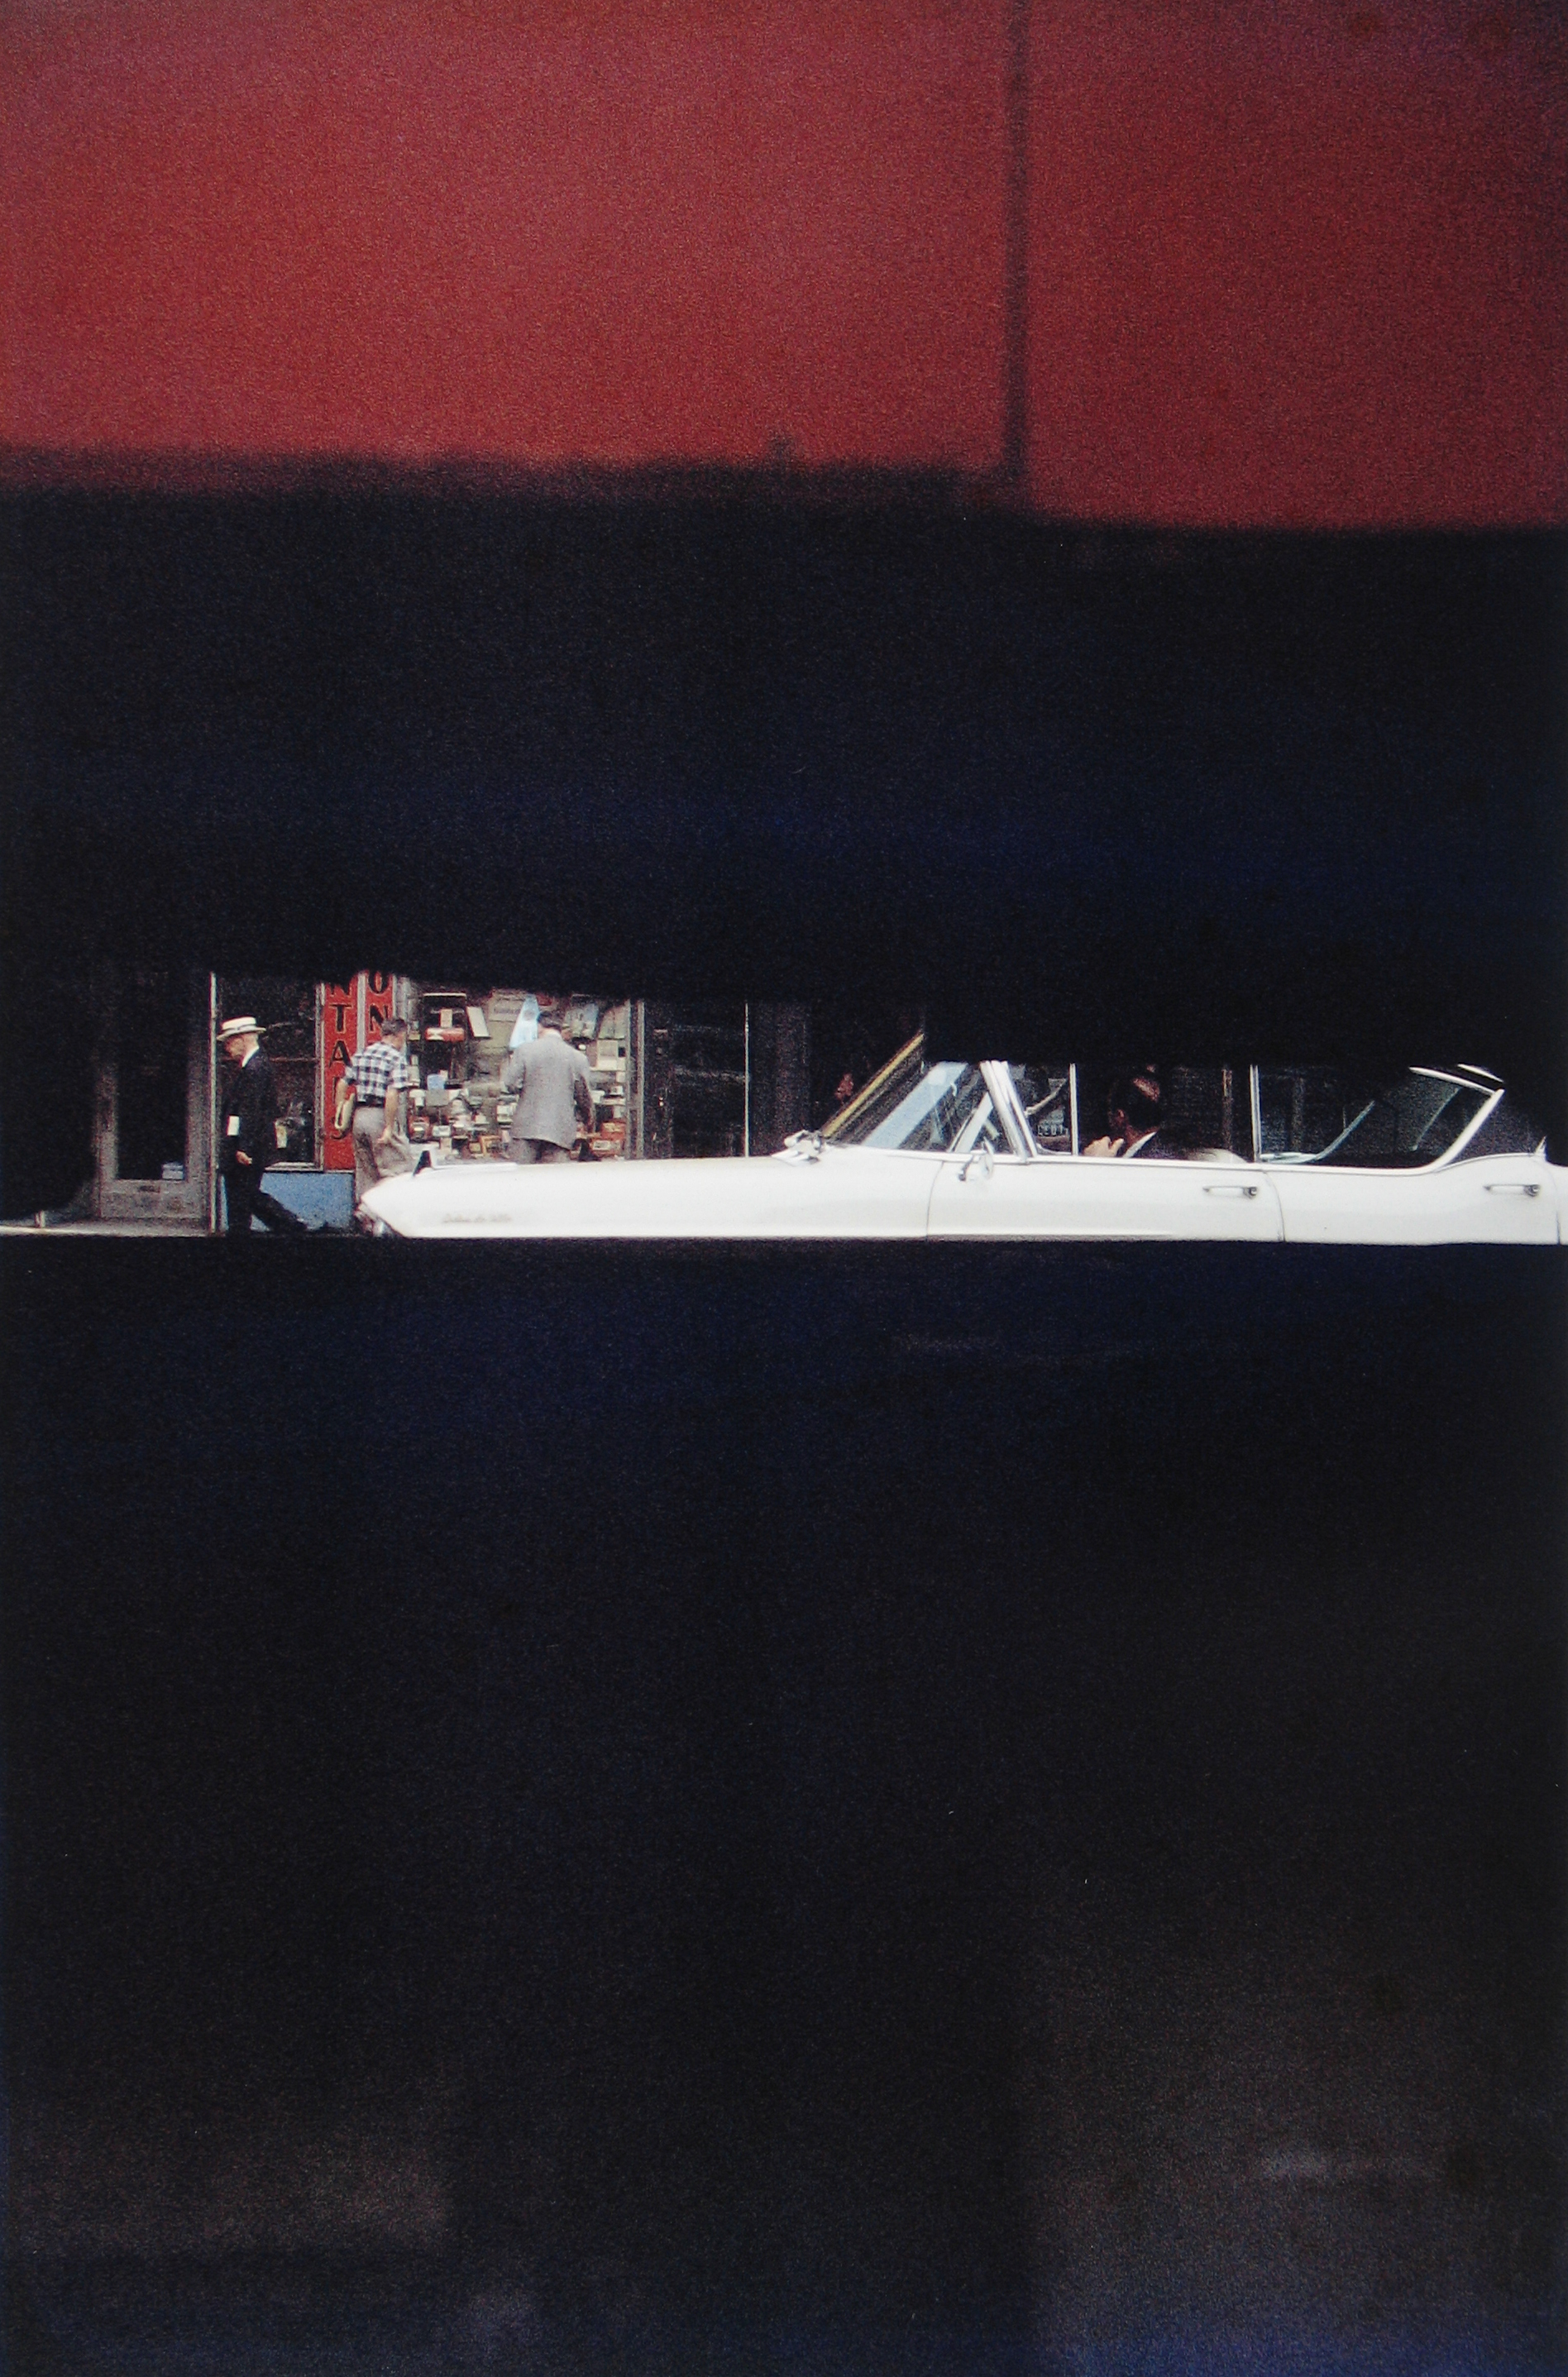 Saul Leiter, Through Boards, Color Photograph, 1957